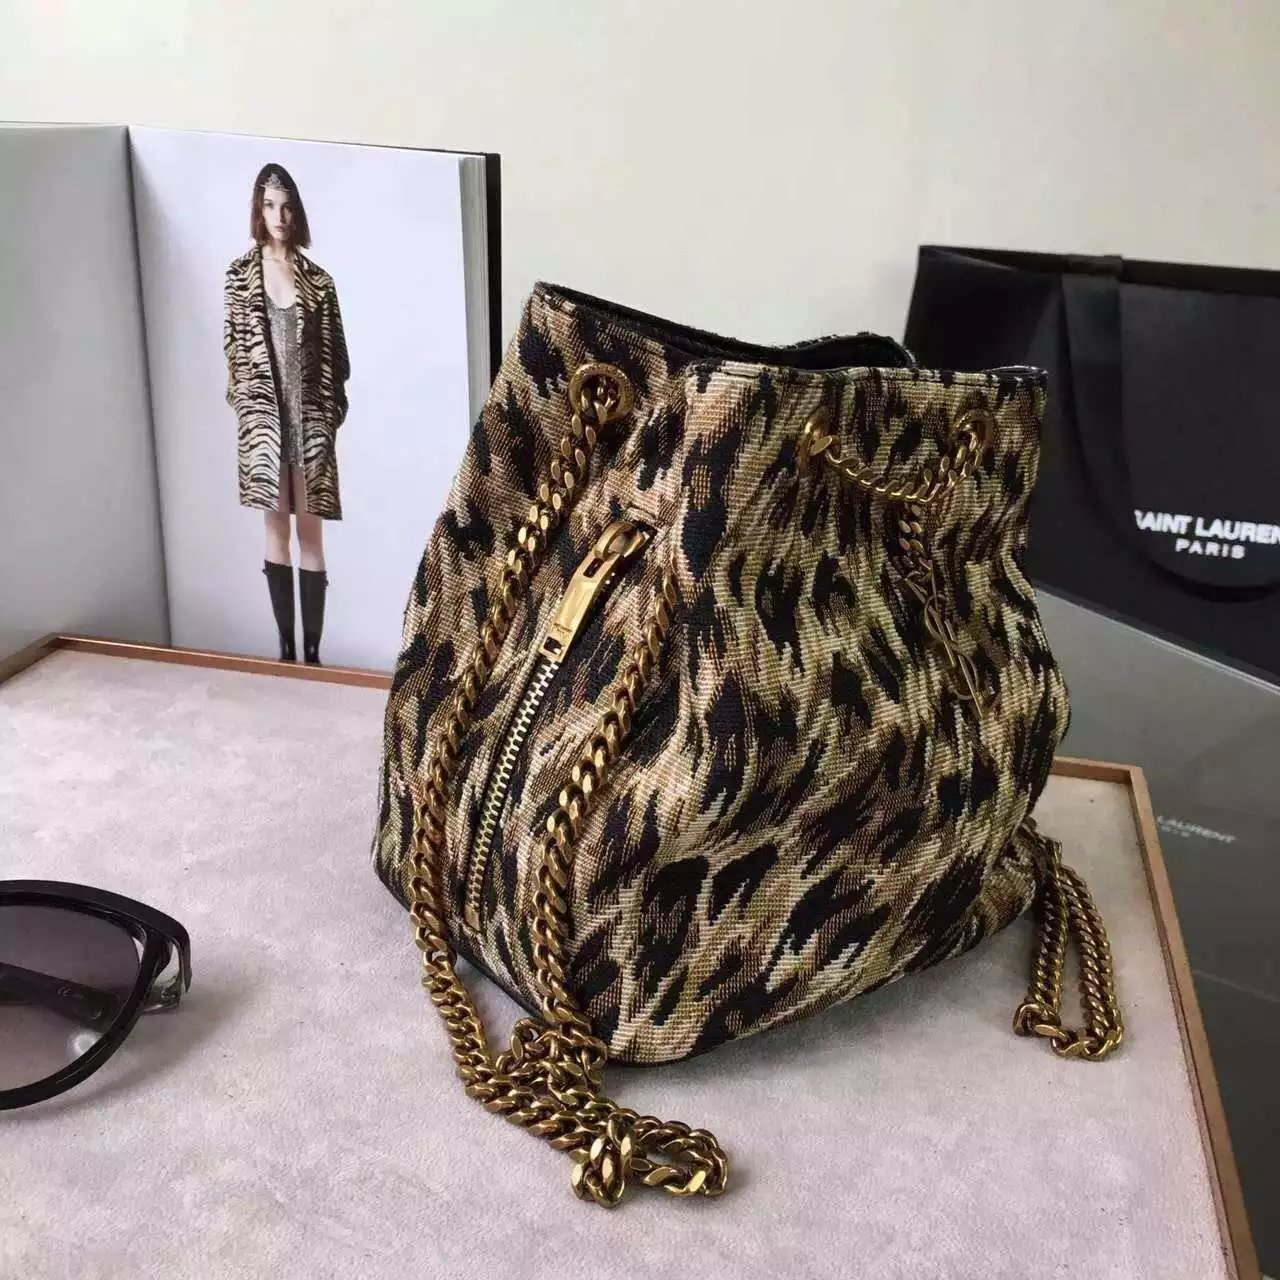 Limited Edition!2016 New Saint Laurent Bag Cheap Sale-Saint Laurent Classic Baby Emmanuelle Chain Bucket Bag in Natural and Black Leopard Woven Polyester and Cotton - Click Image to Close